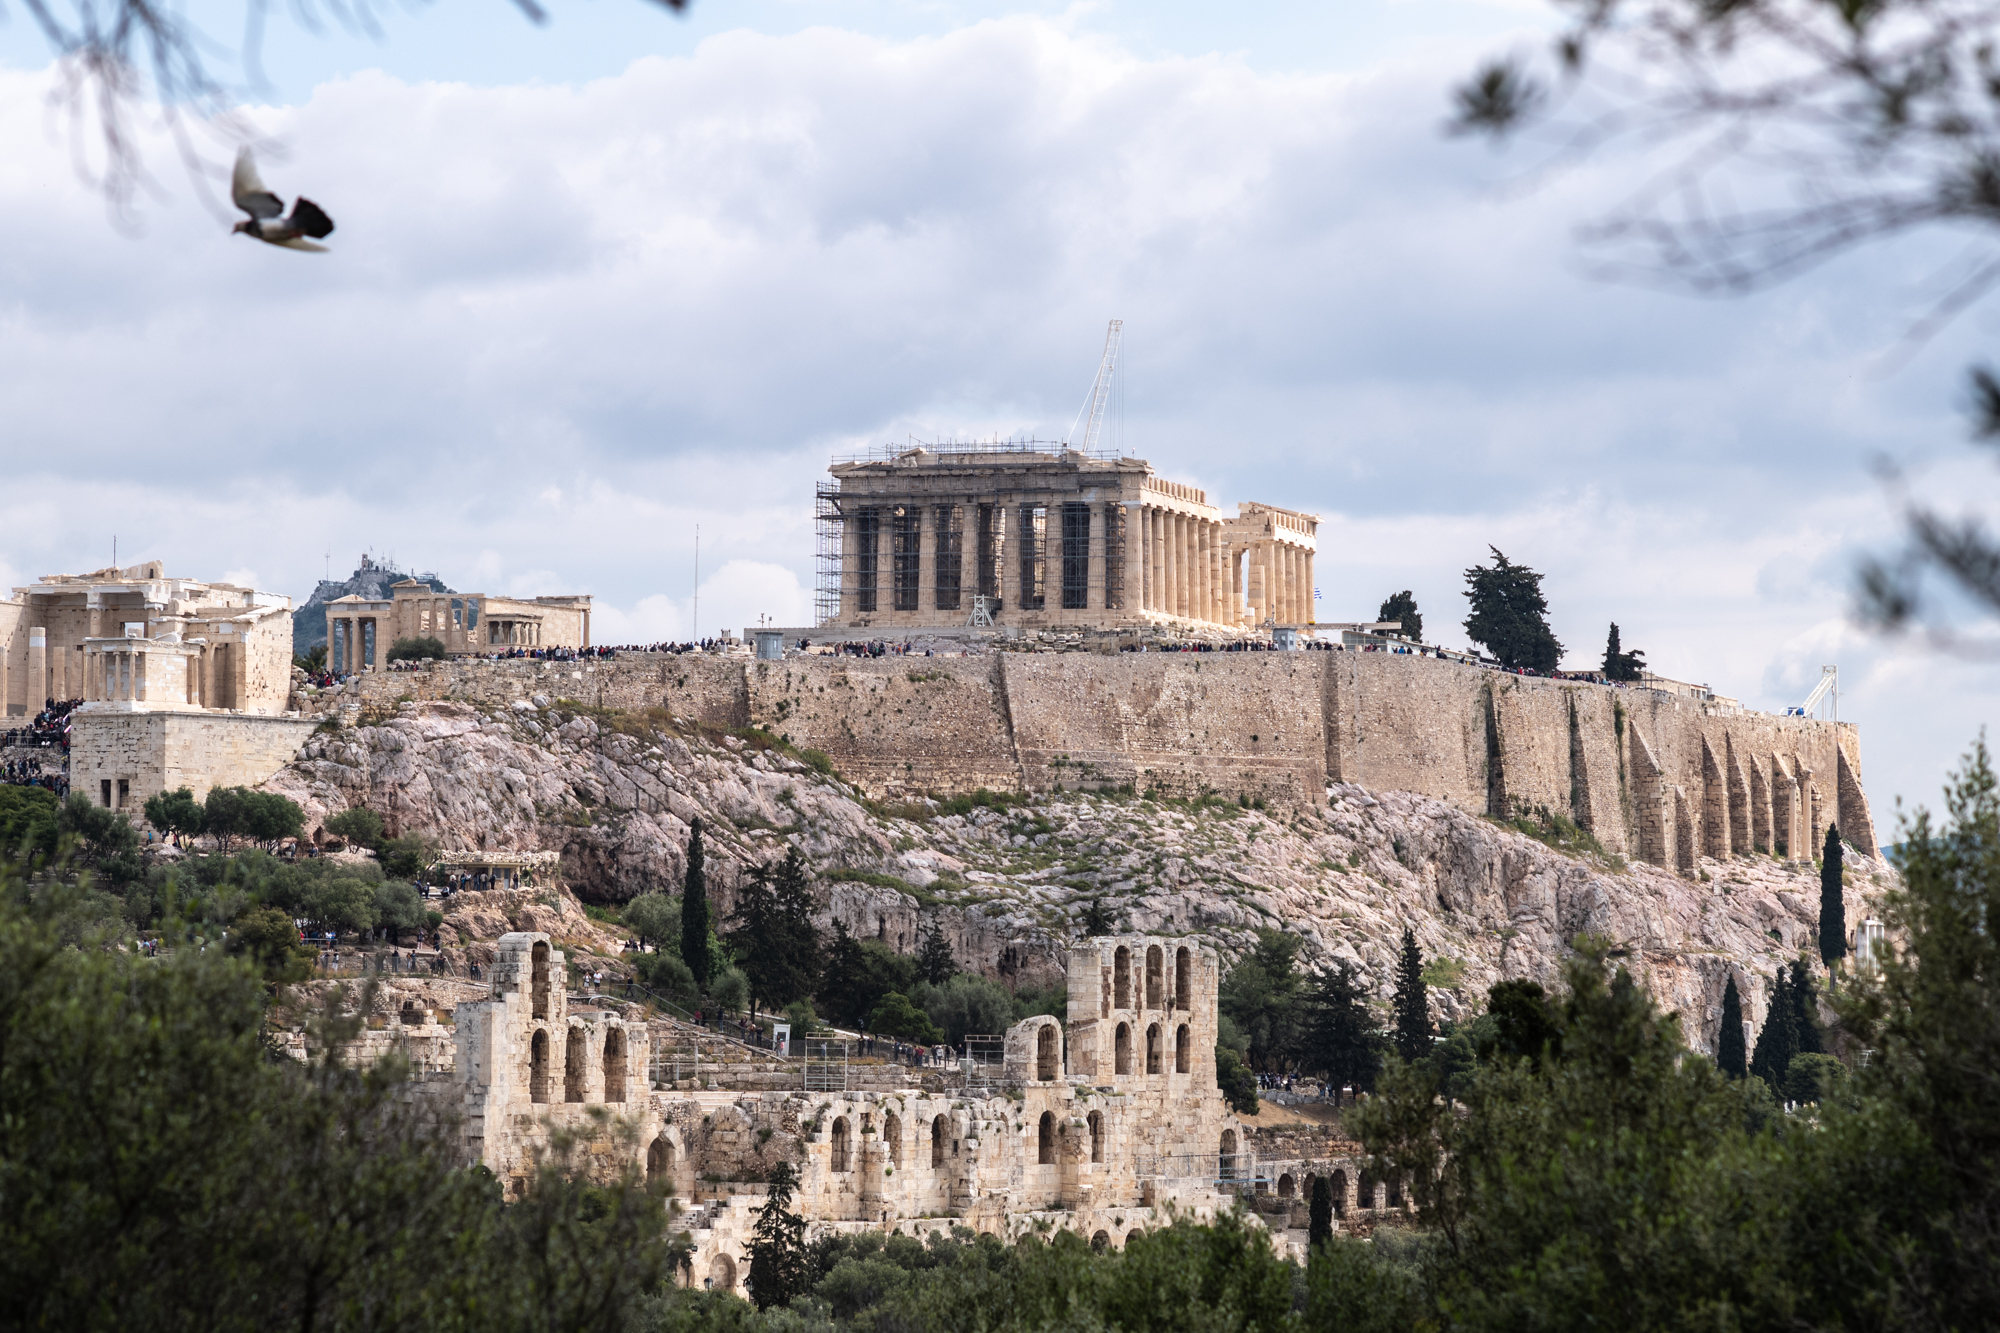 Framing the Acropolis through the trees on Philopappos Hill